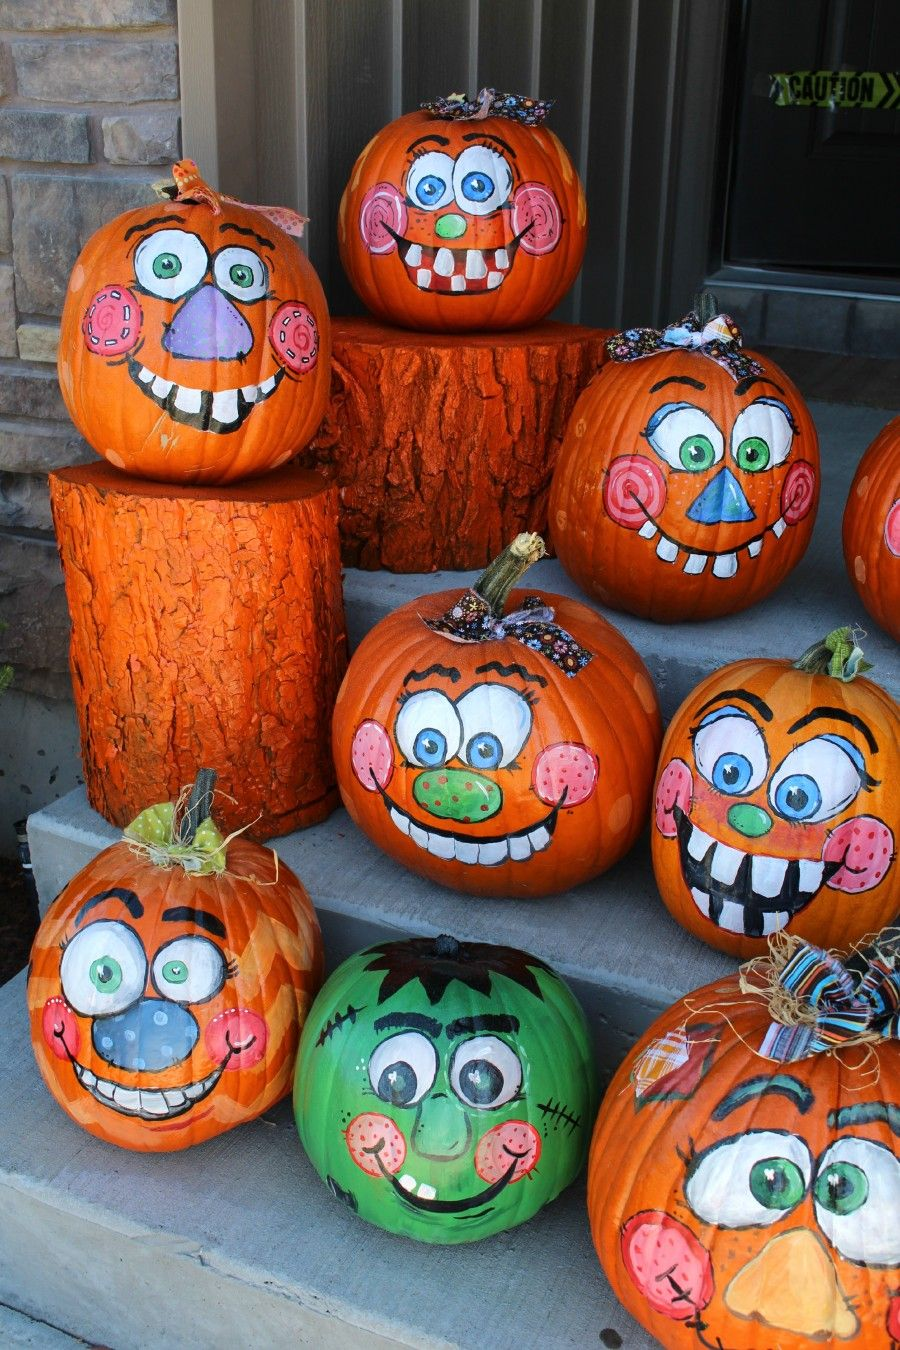 150 Pumpkin Decorating Ideas | Pumpkin decorating contest, Pumpkin ...